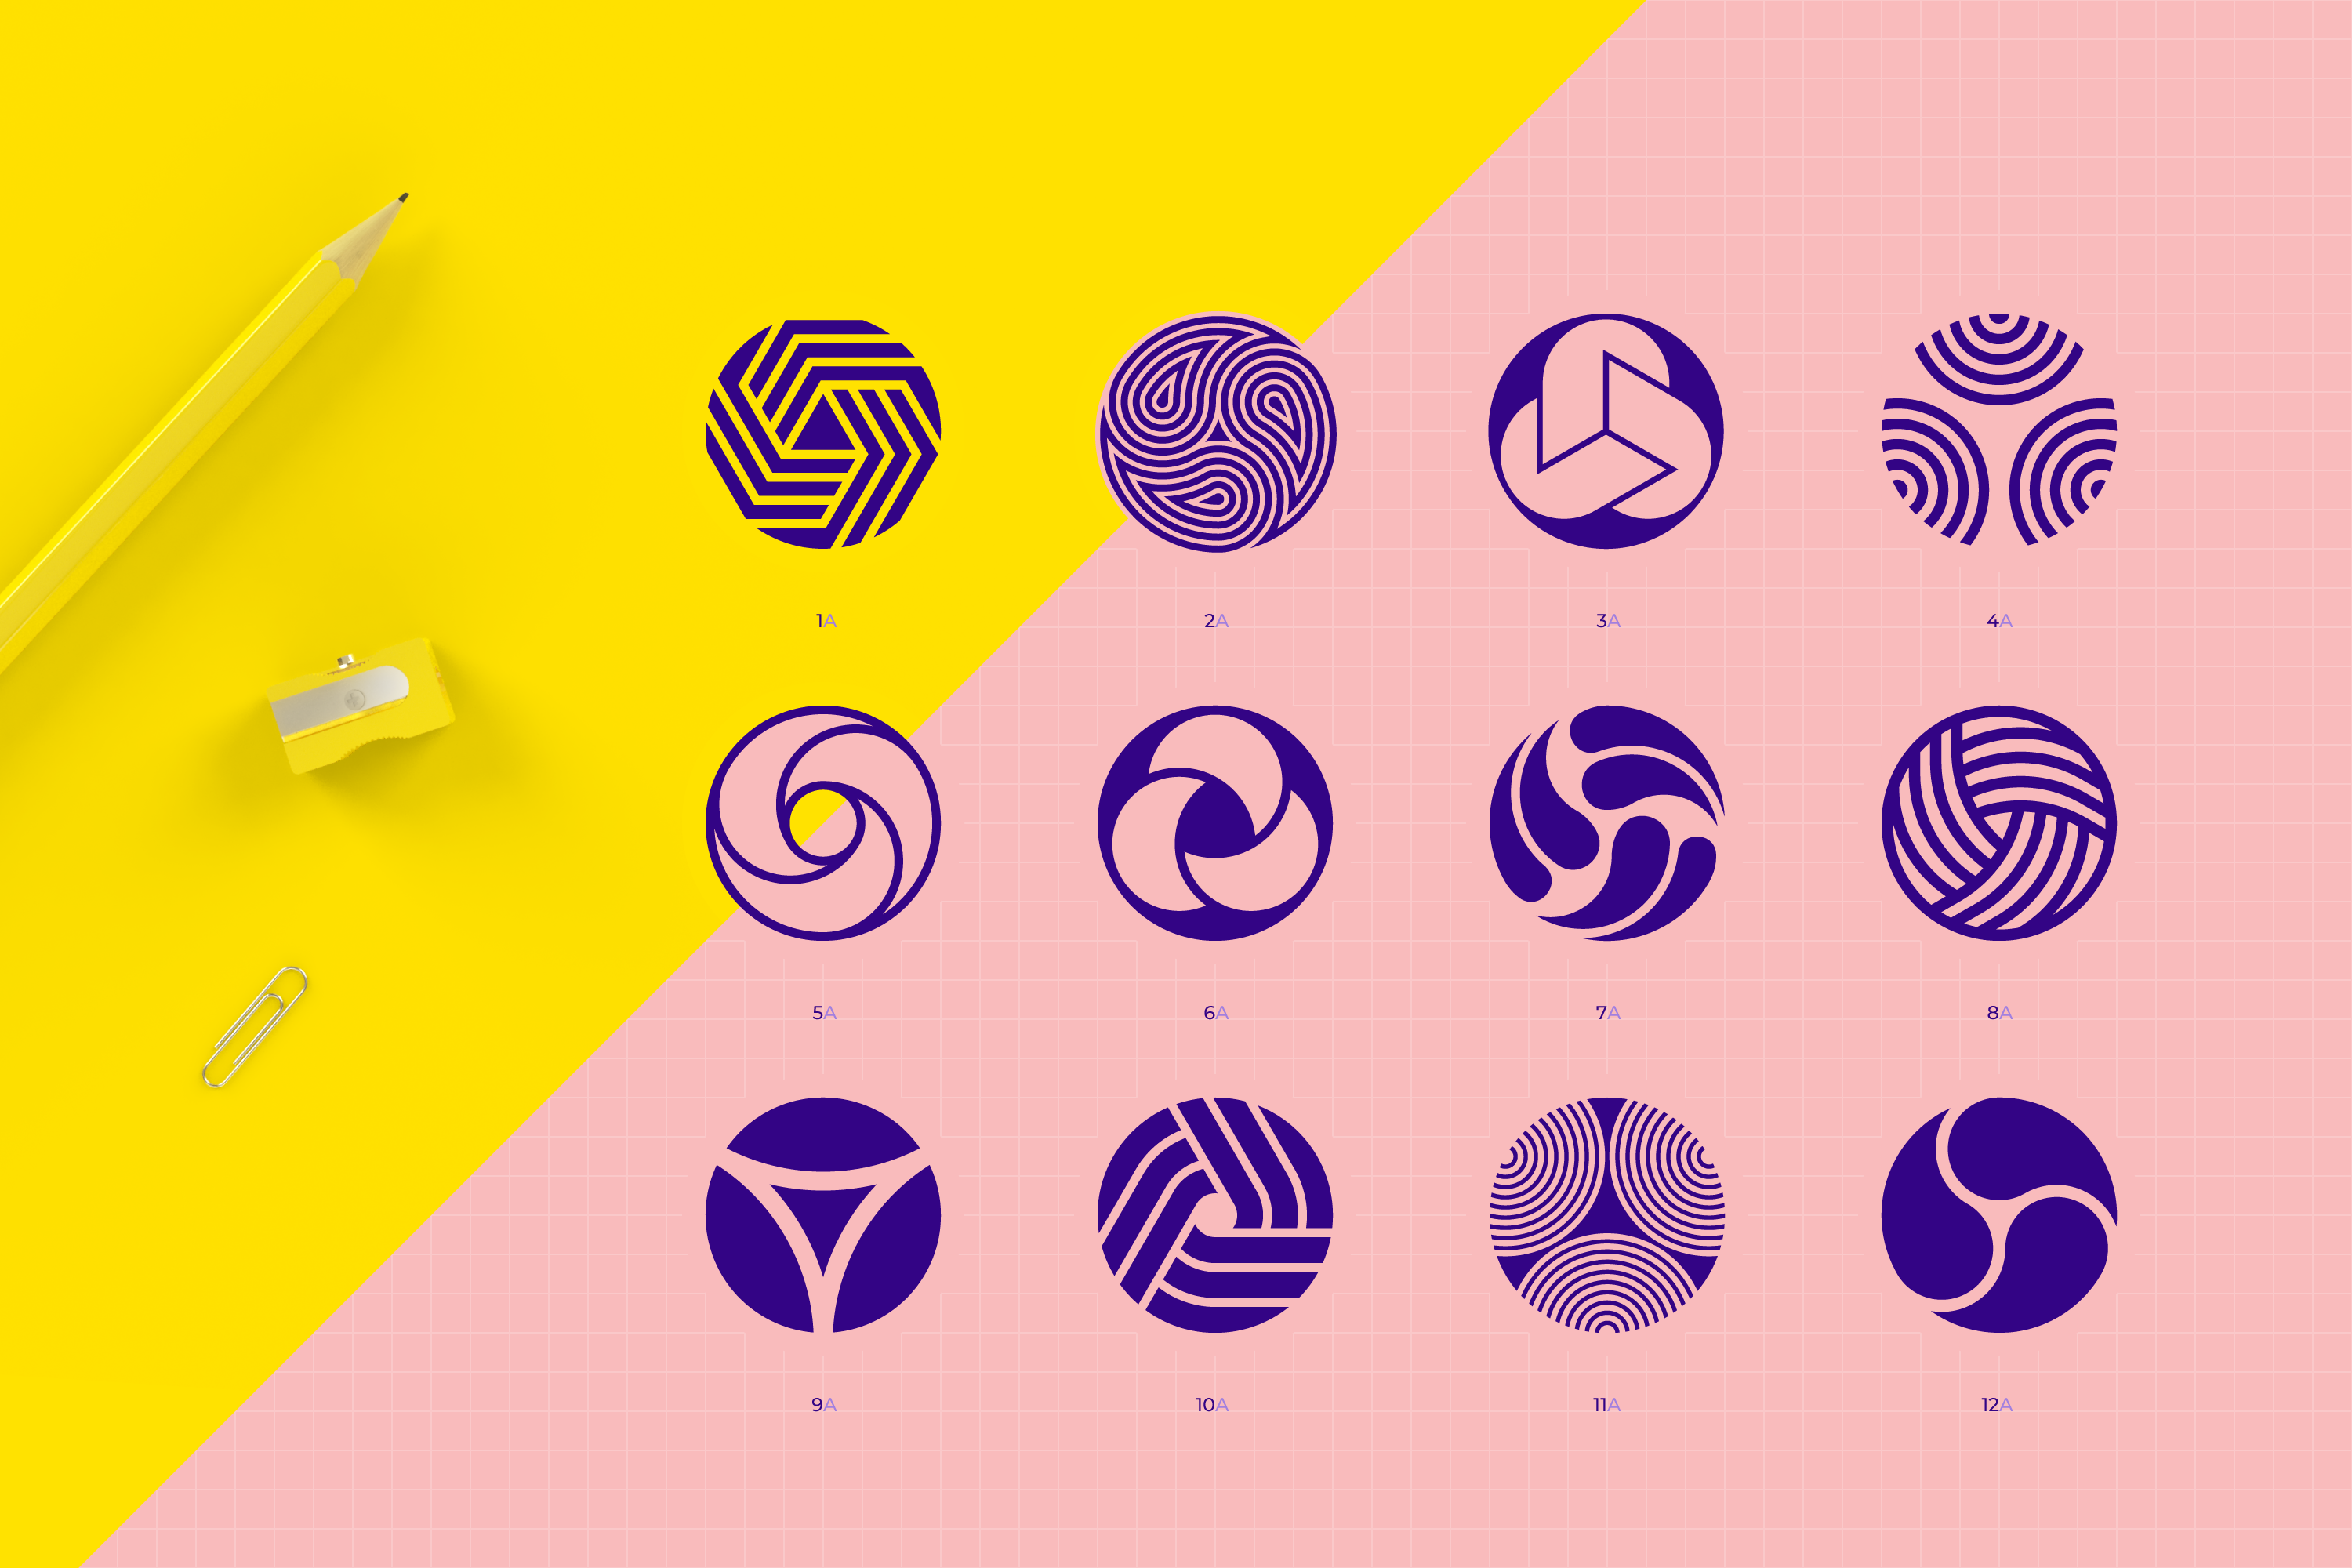 96 Geometric shapes & logo marks collection VOL.1 example image 2